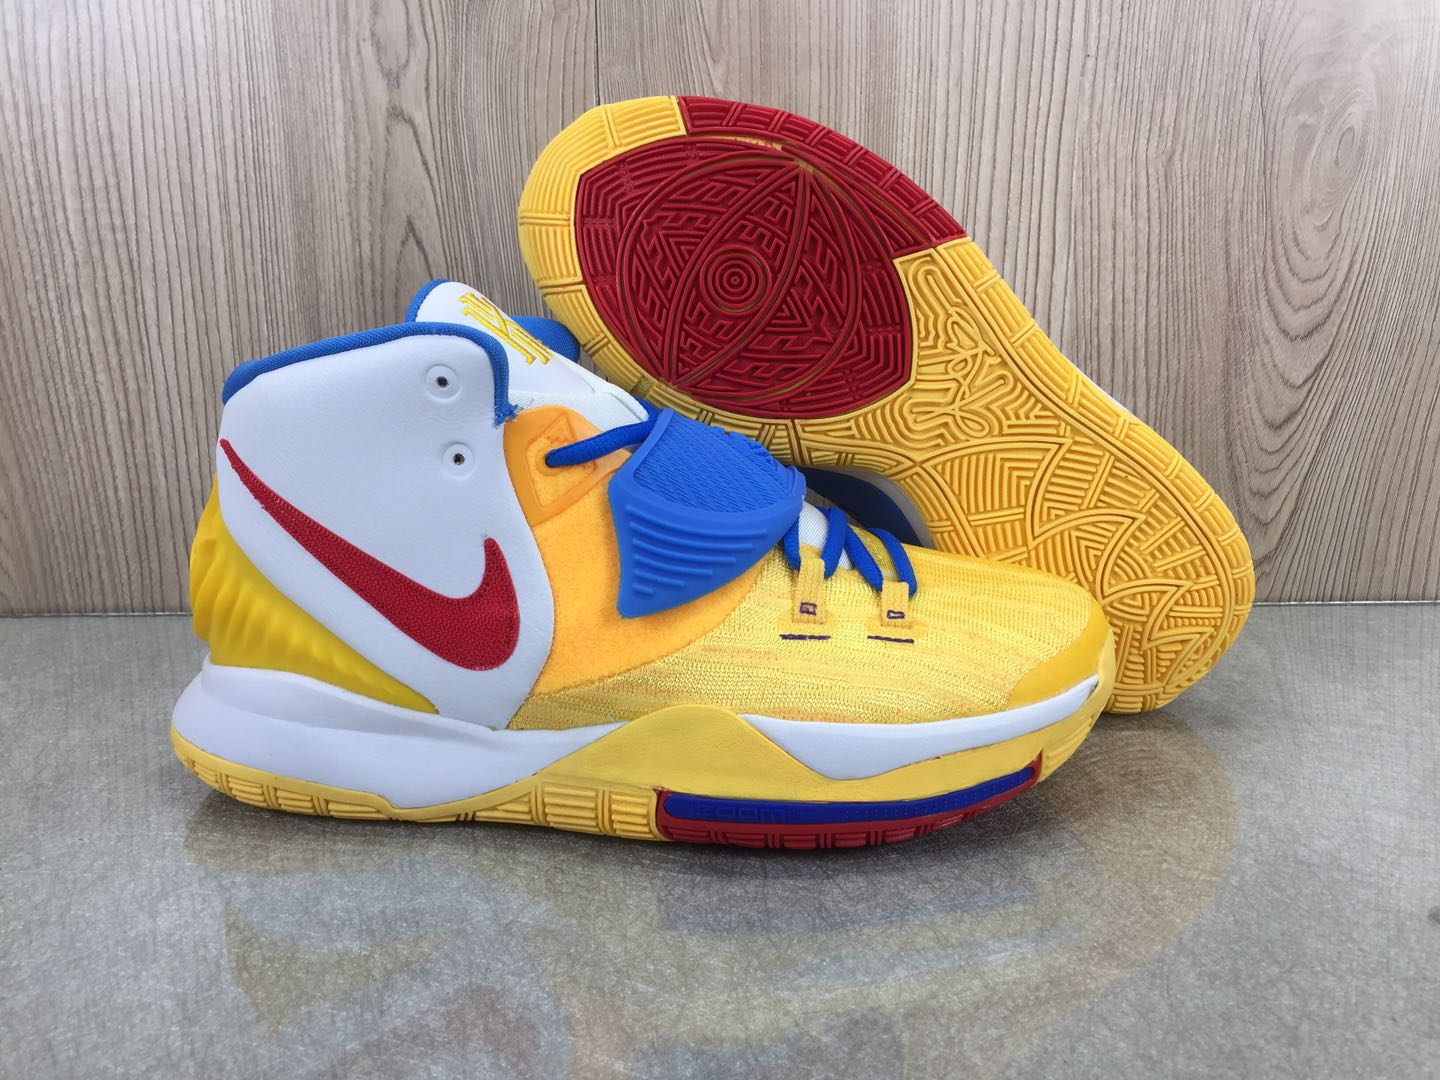 2020 Nike Kyrie 6 BHM Yellow Blue White Red Shoes